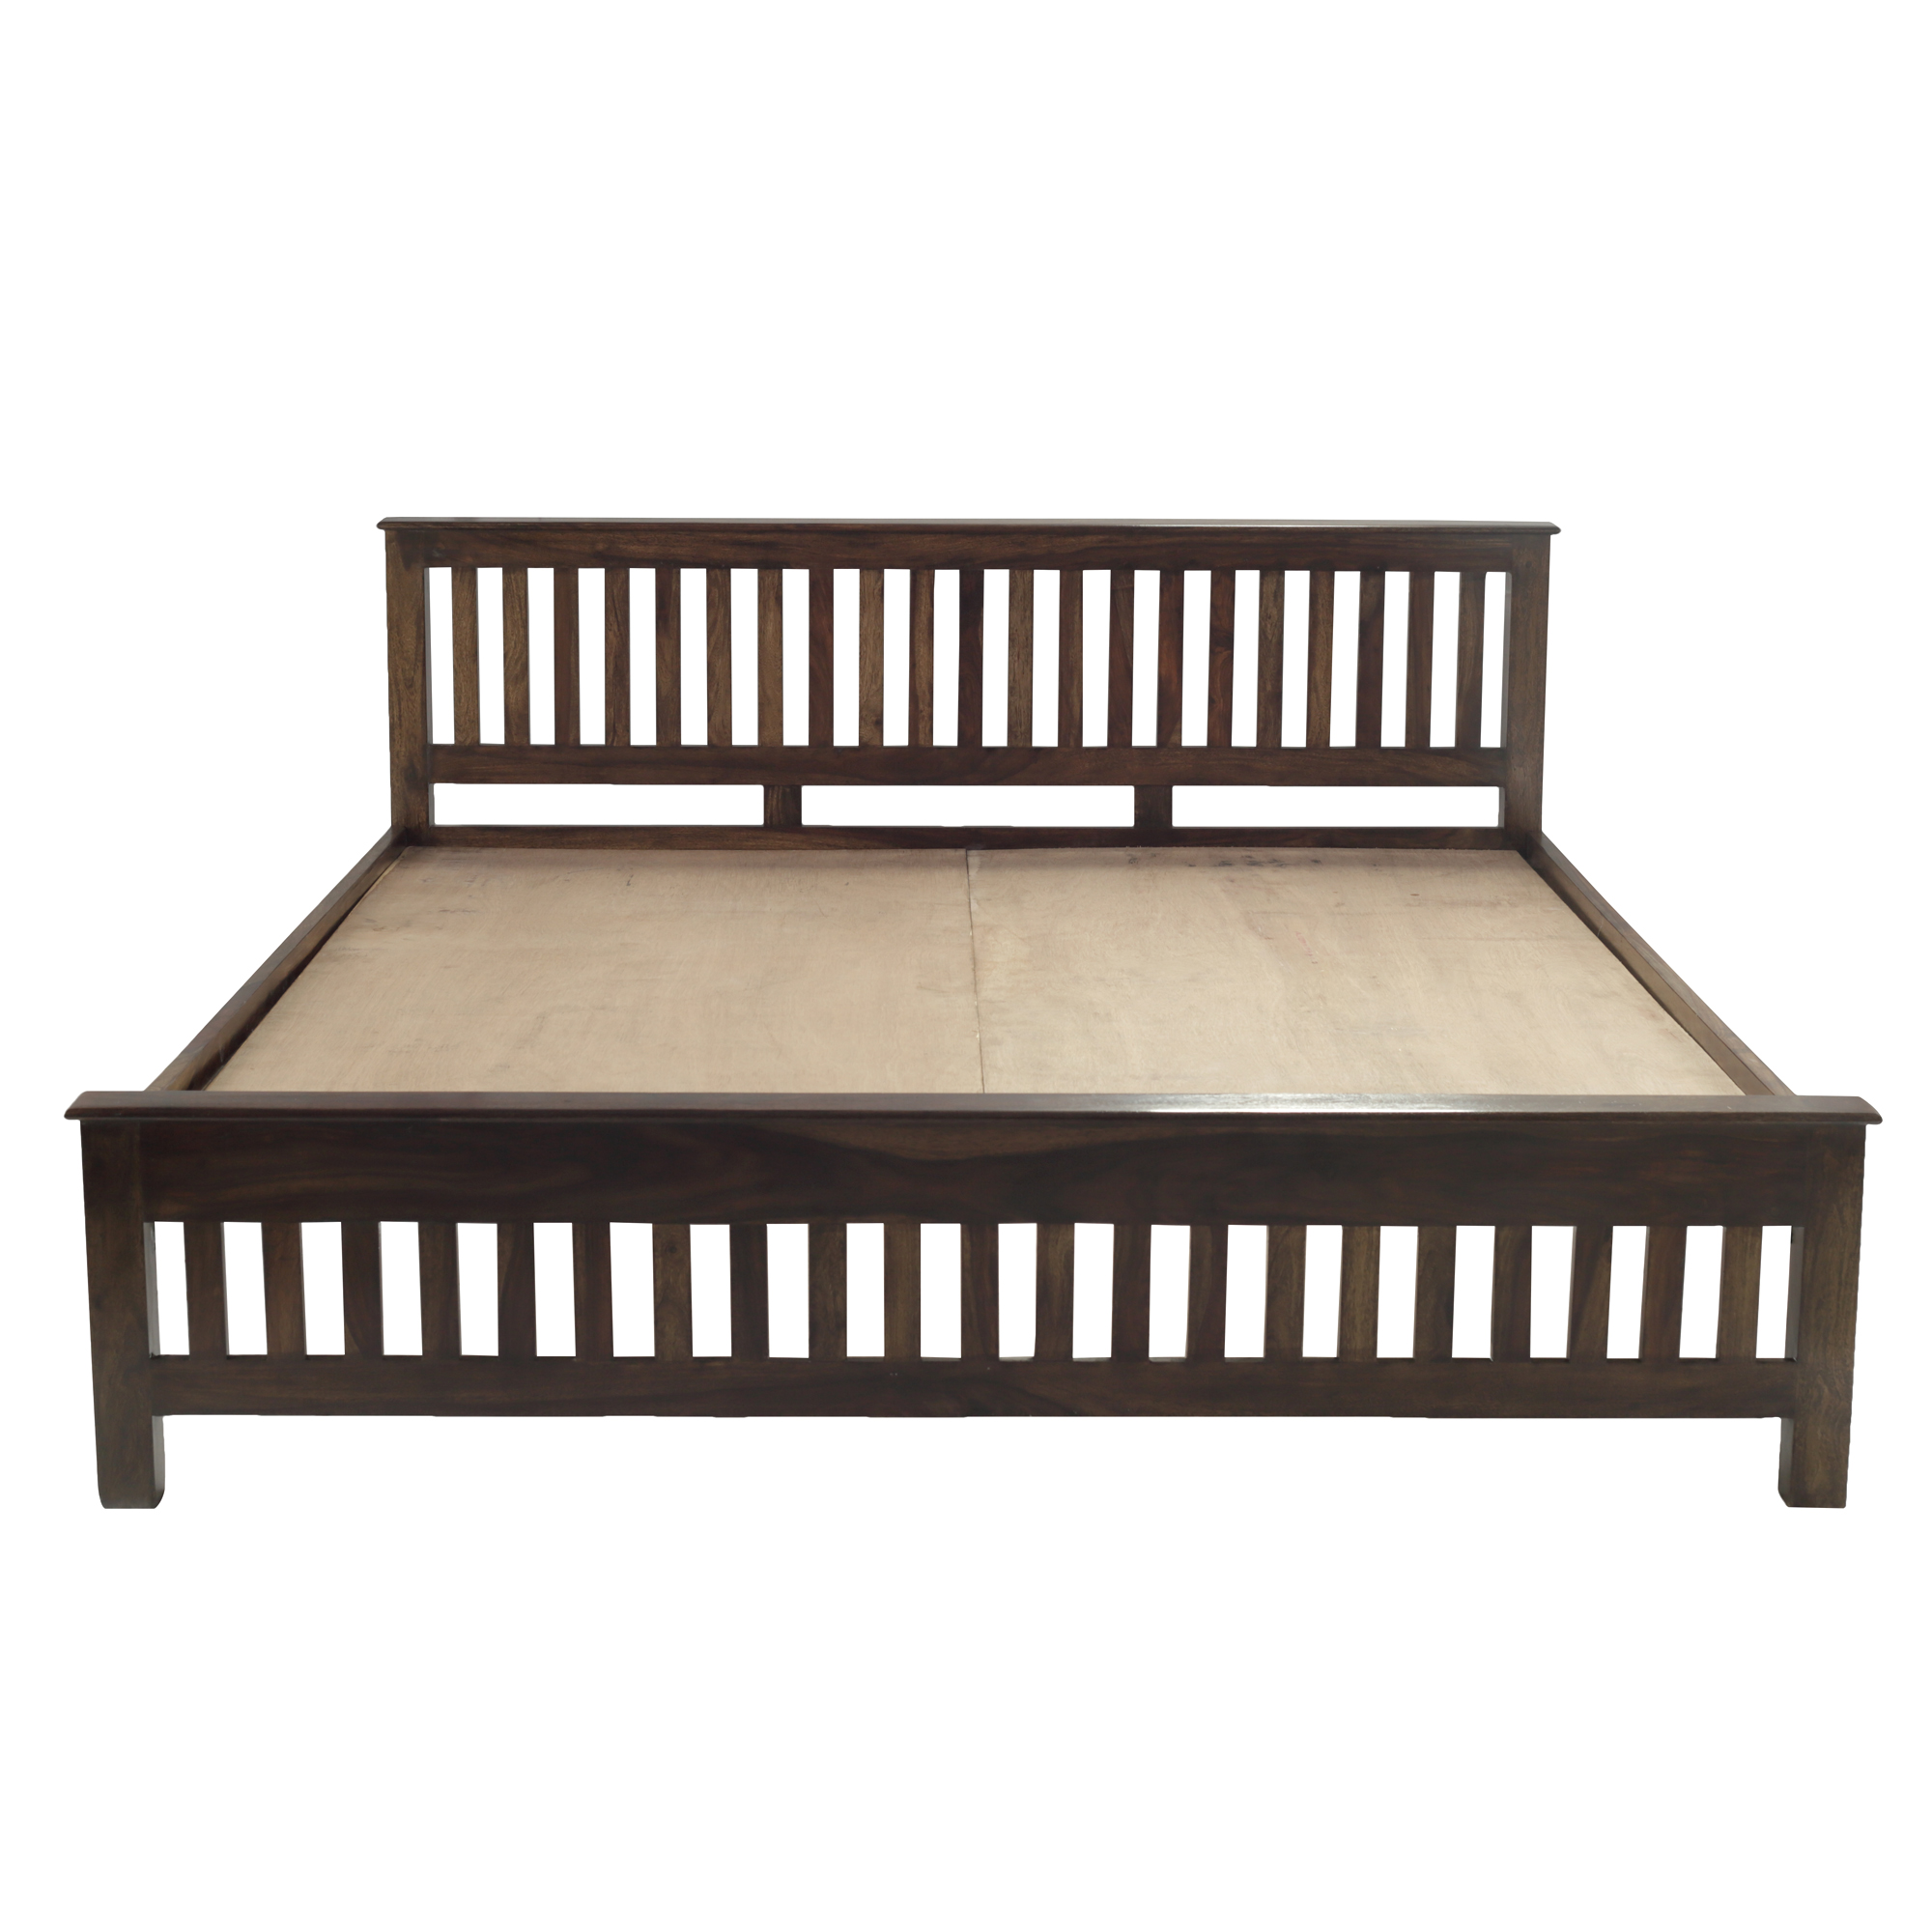 Niagara Solid Wood King Size Bed In Provincial Teak Finish